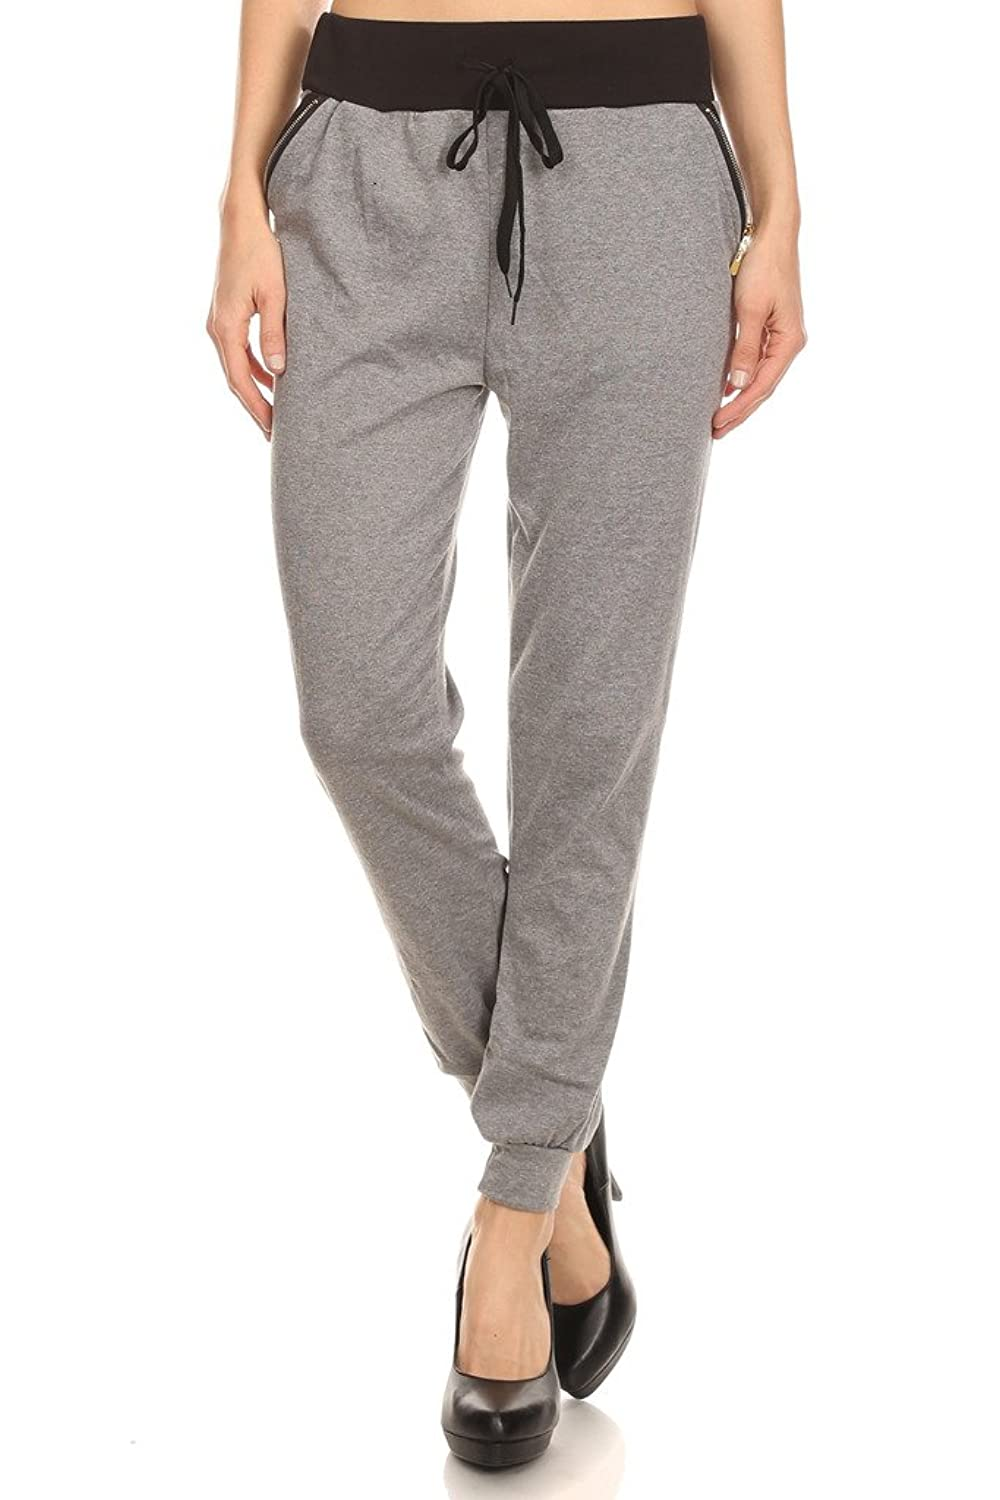 2ND DATE Women's Relaxed Poly Cotton Jogger Pants